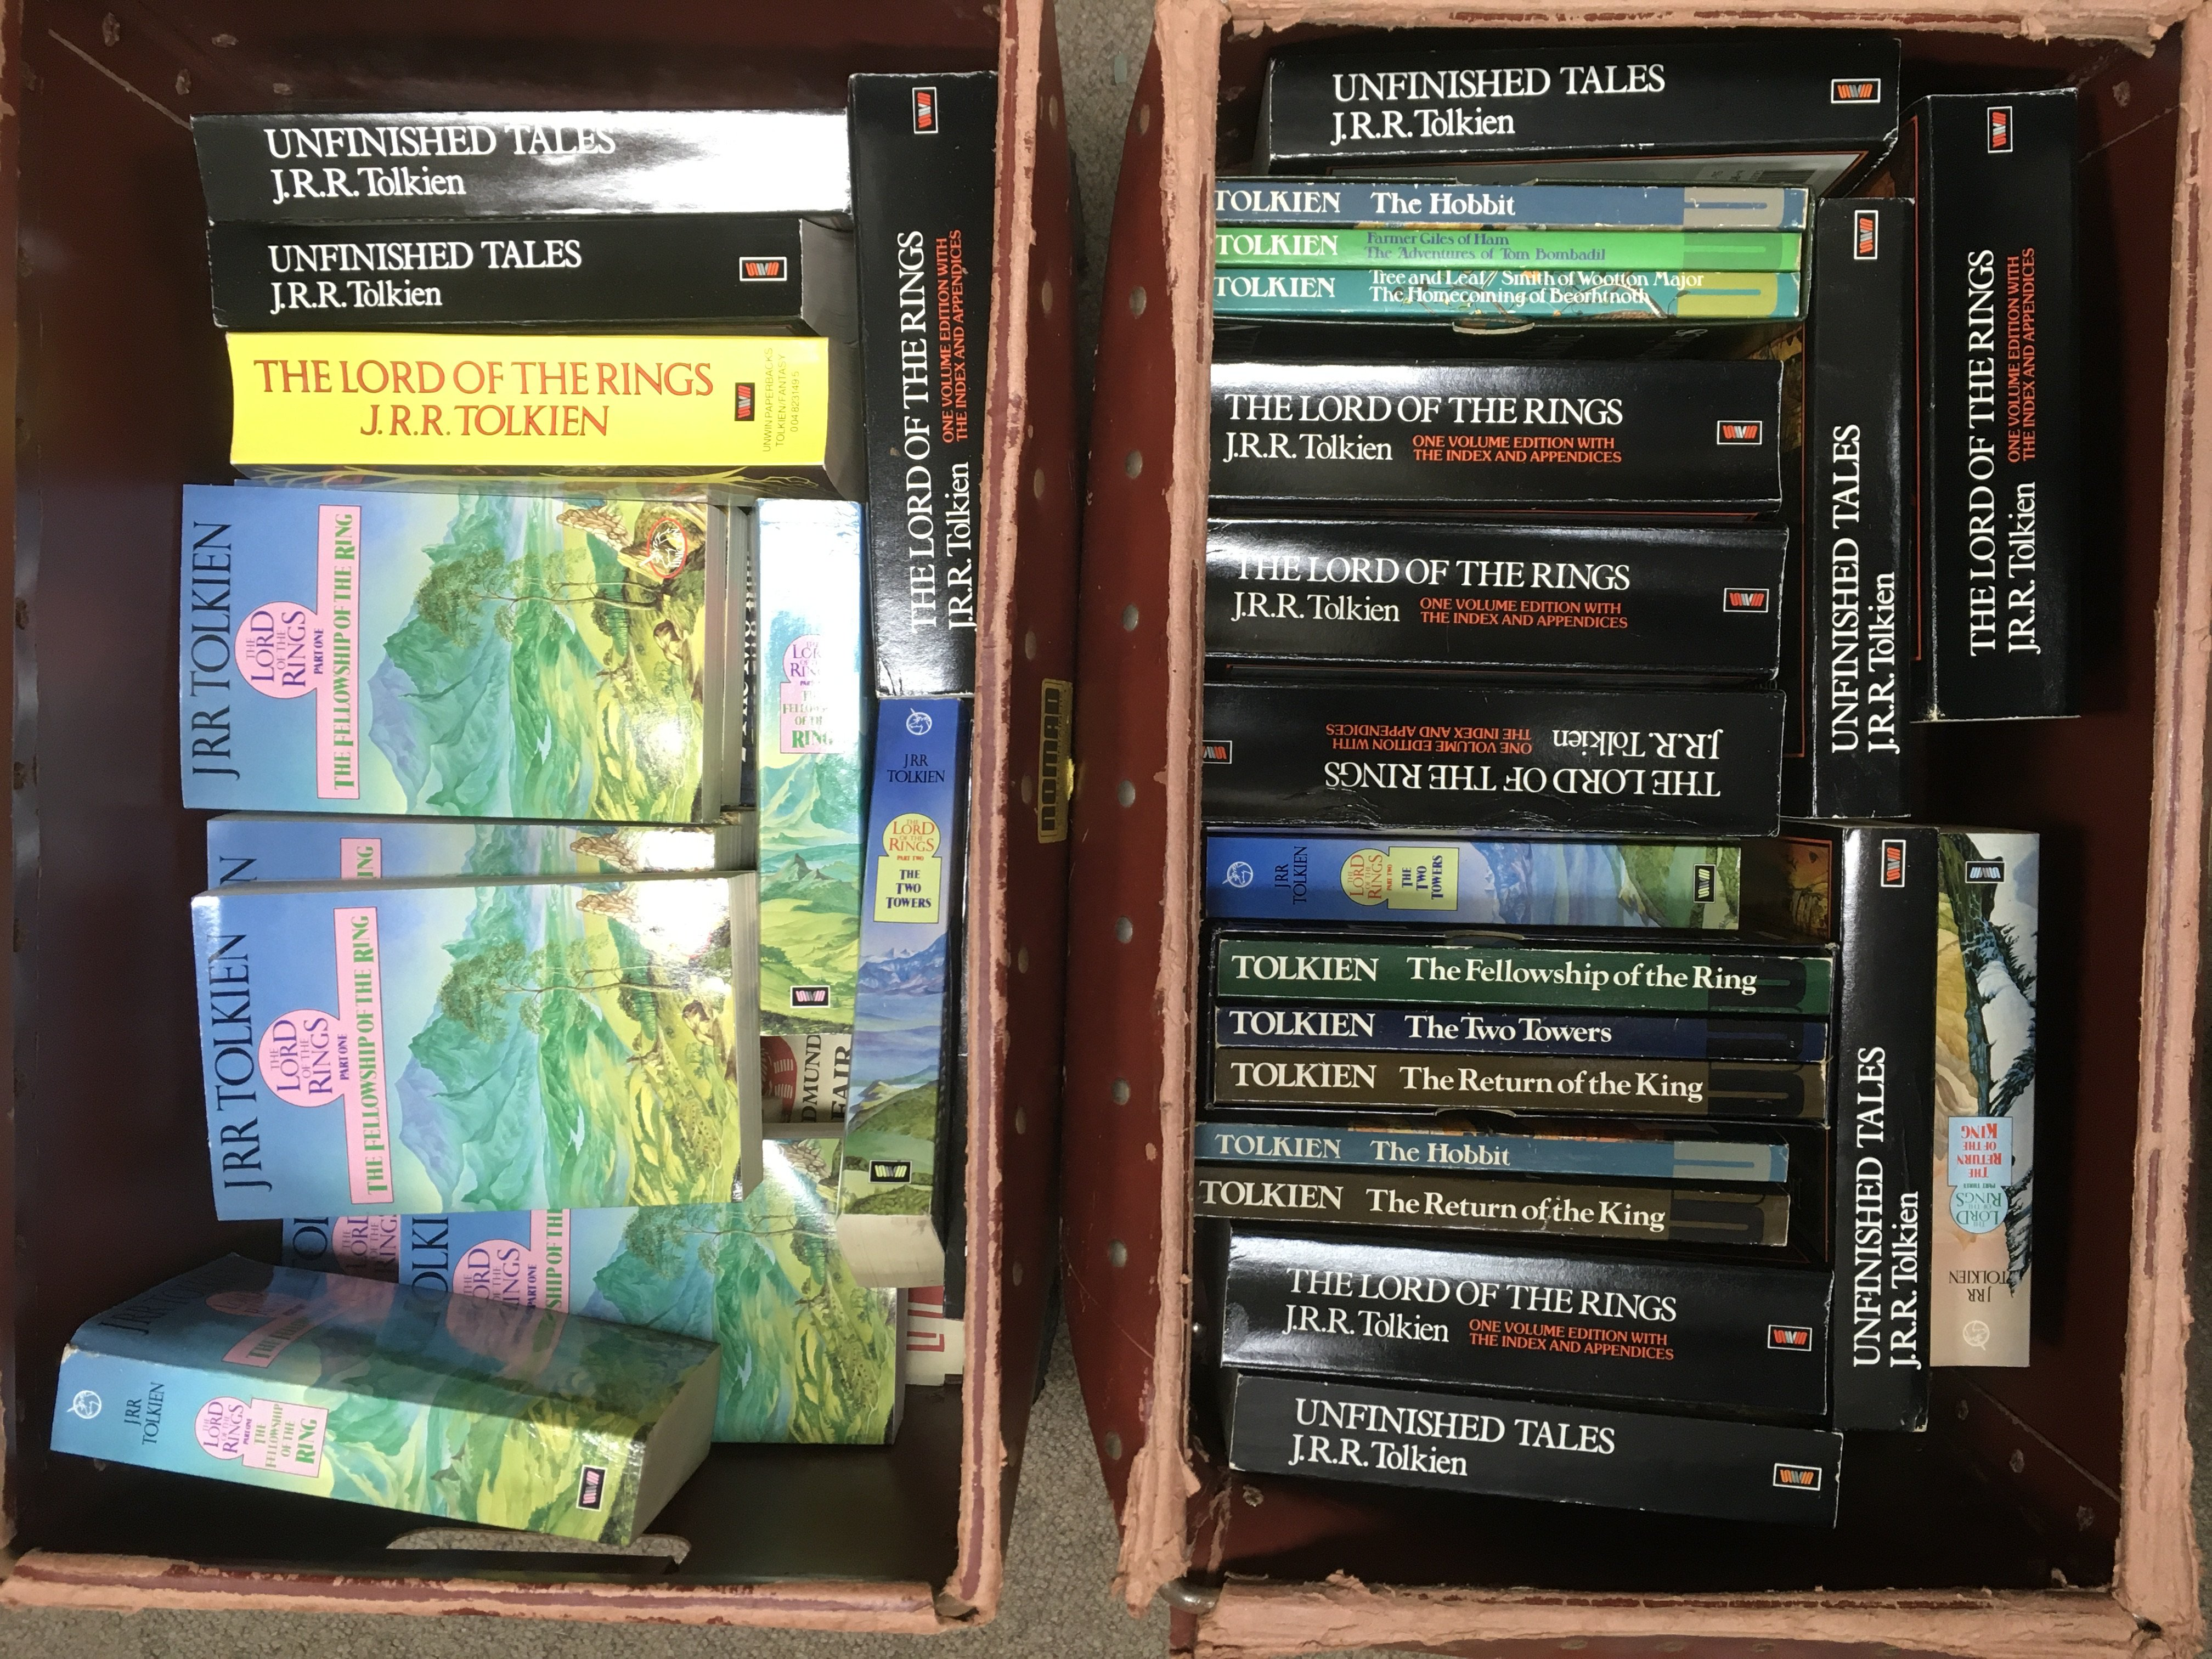 Two boxes of JRR Tolkien paperback books.